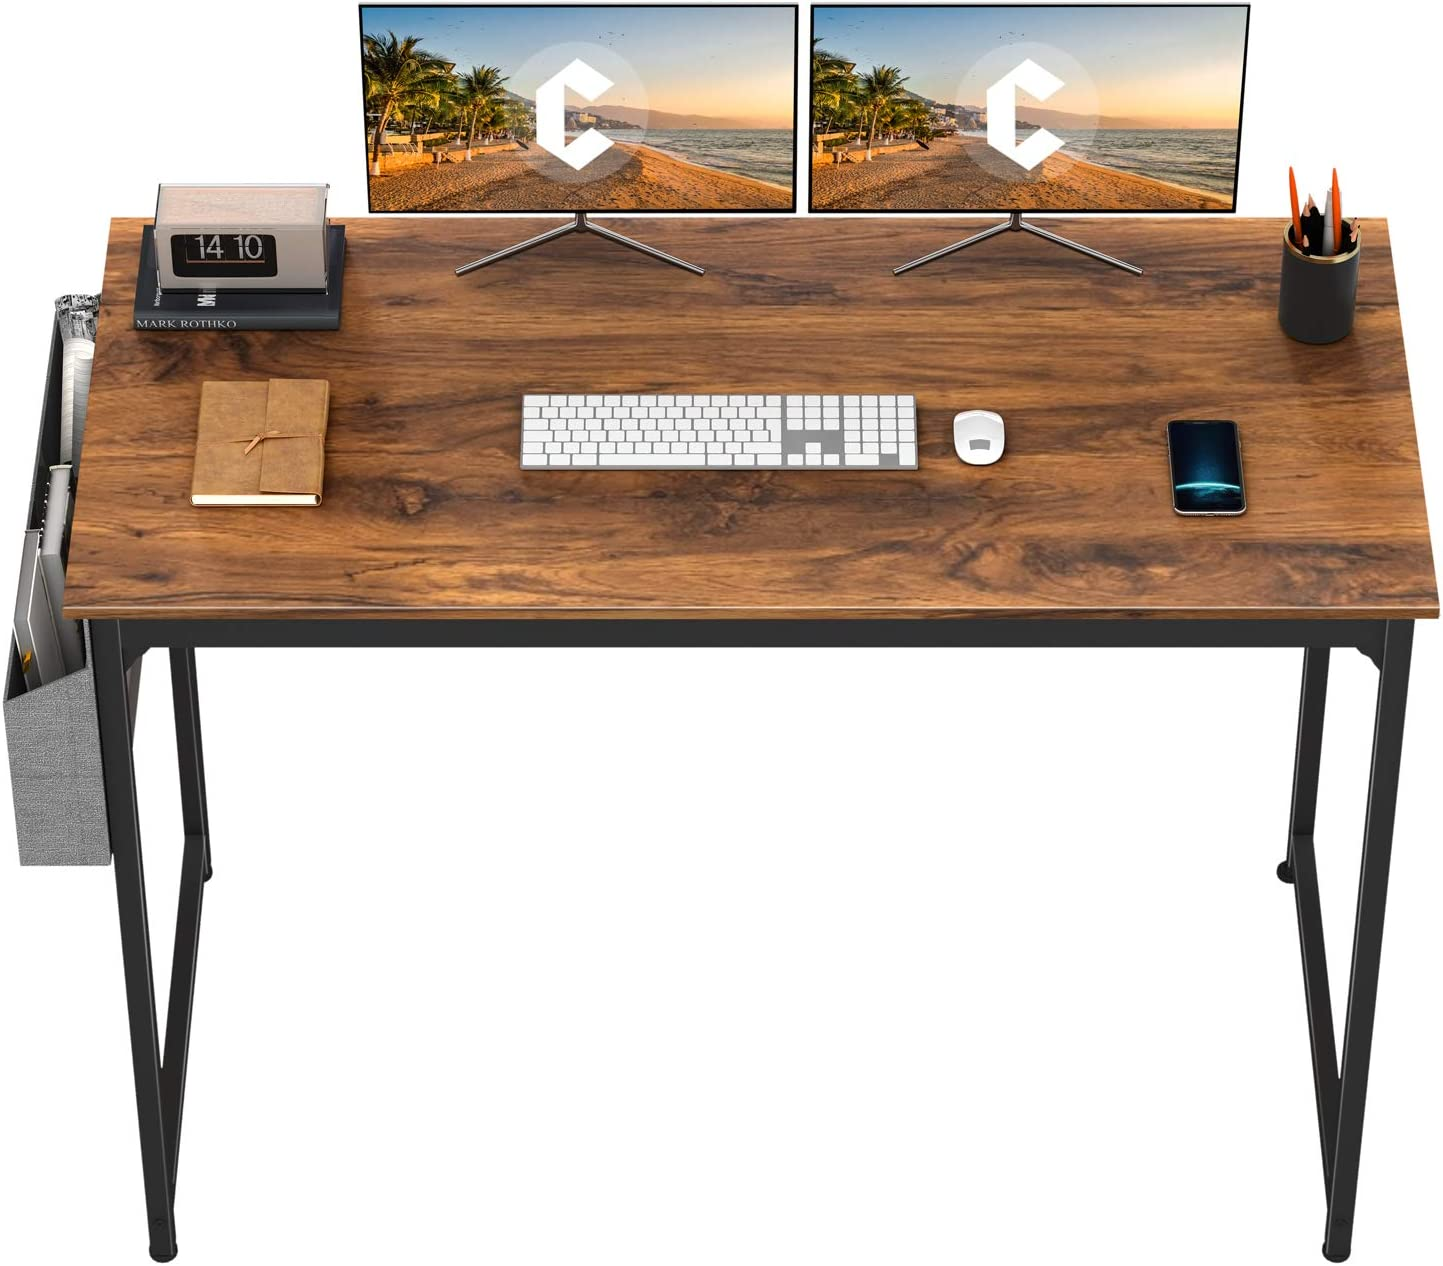 "CubiCubi Study Computer Desk 55"" Home Office Writing Small Desk, Modern Simple Style PC Table, Black Metal Frame, Deep Brown"